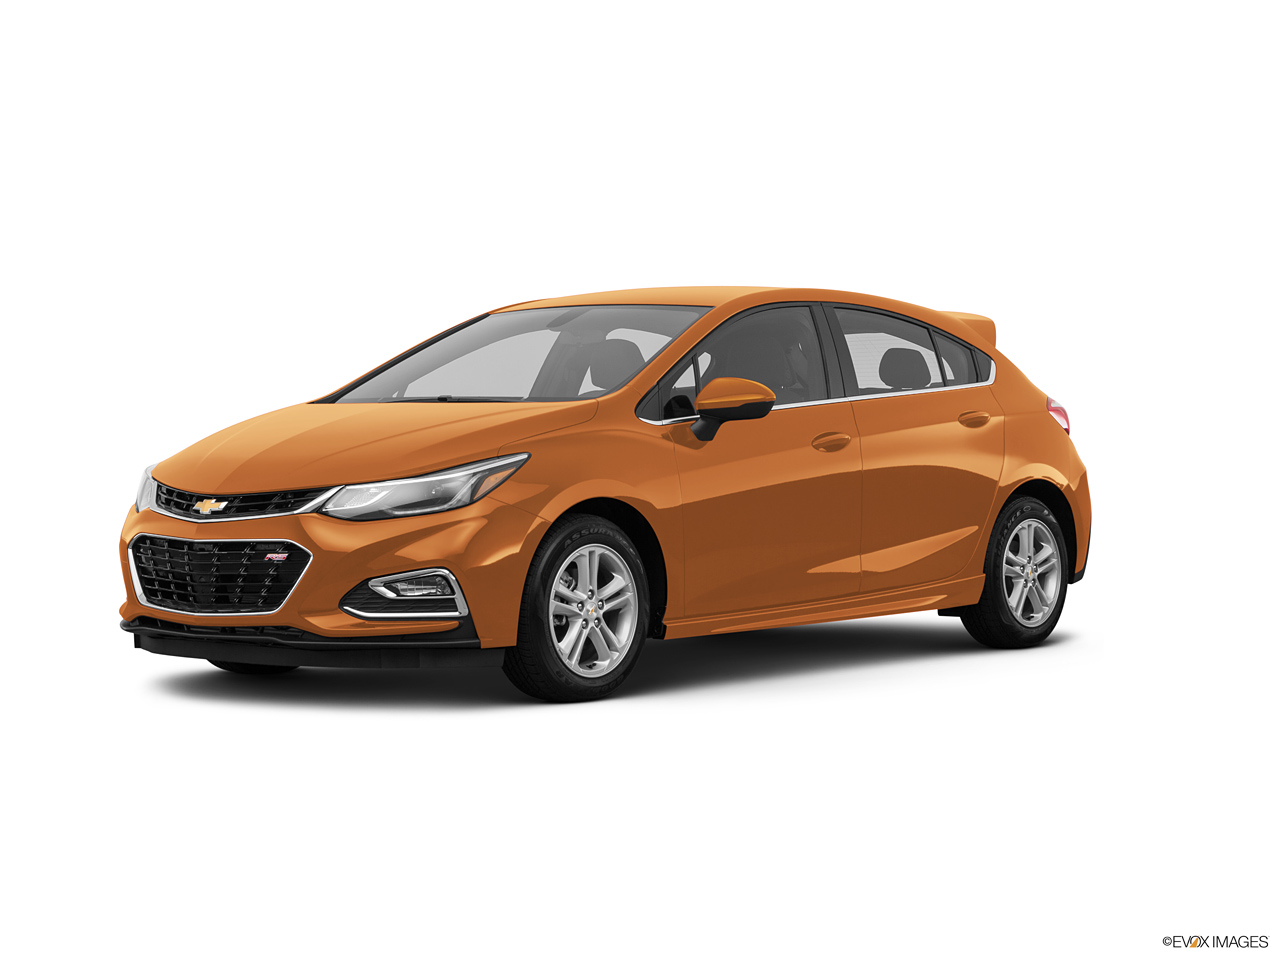 chevrolet cruze 2017 1 8 lt hatchback in uae new car prices specs reviews photos yallamotor. Black Bedroom Furniture Sets. Home Design Ideas